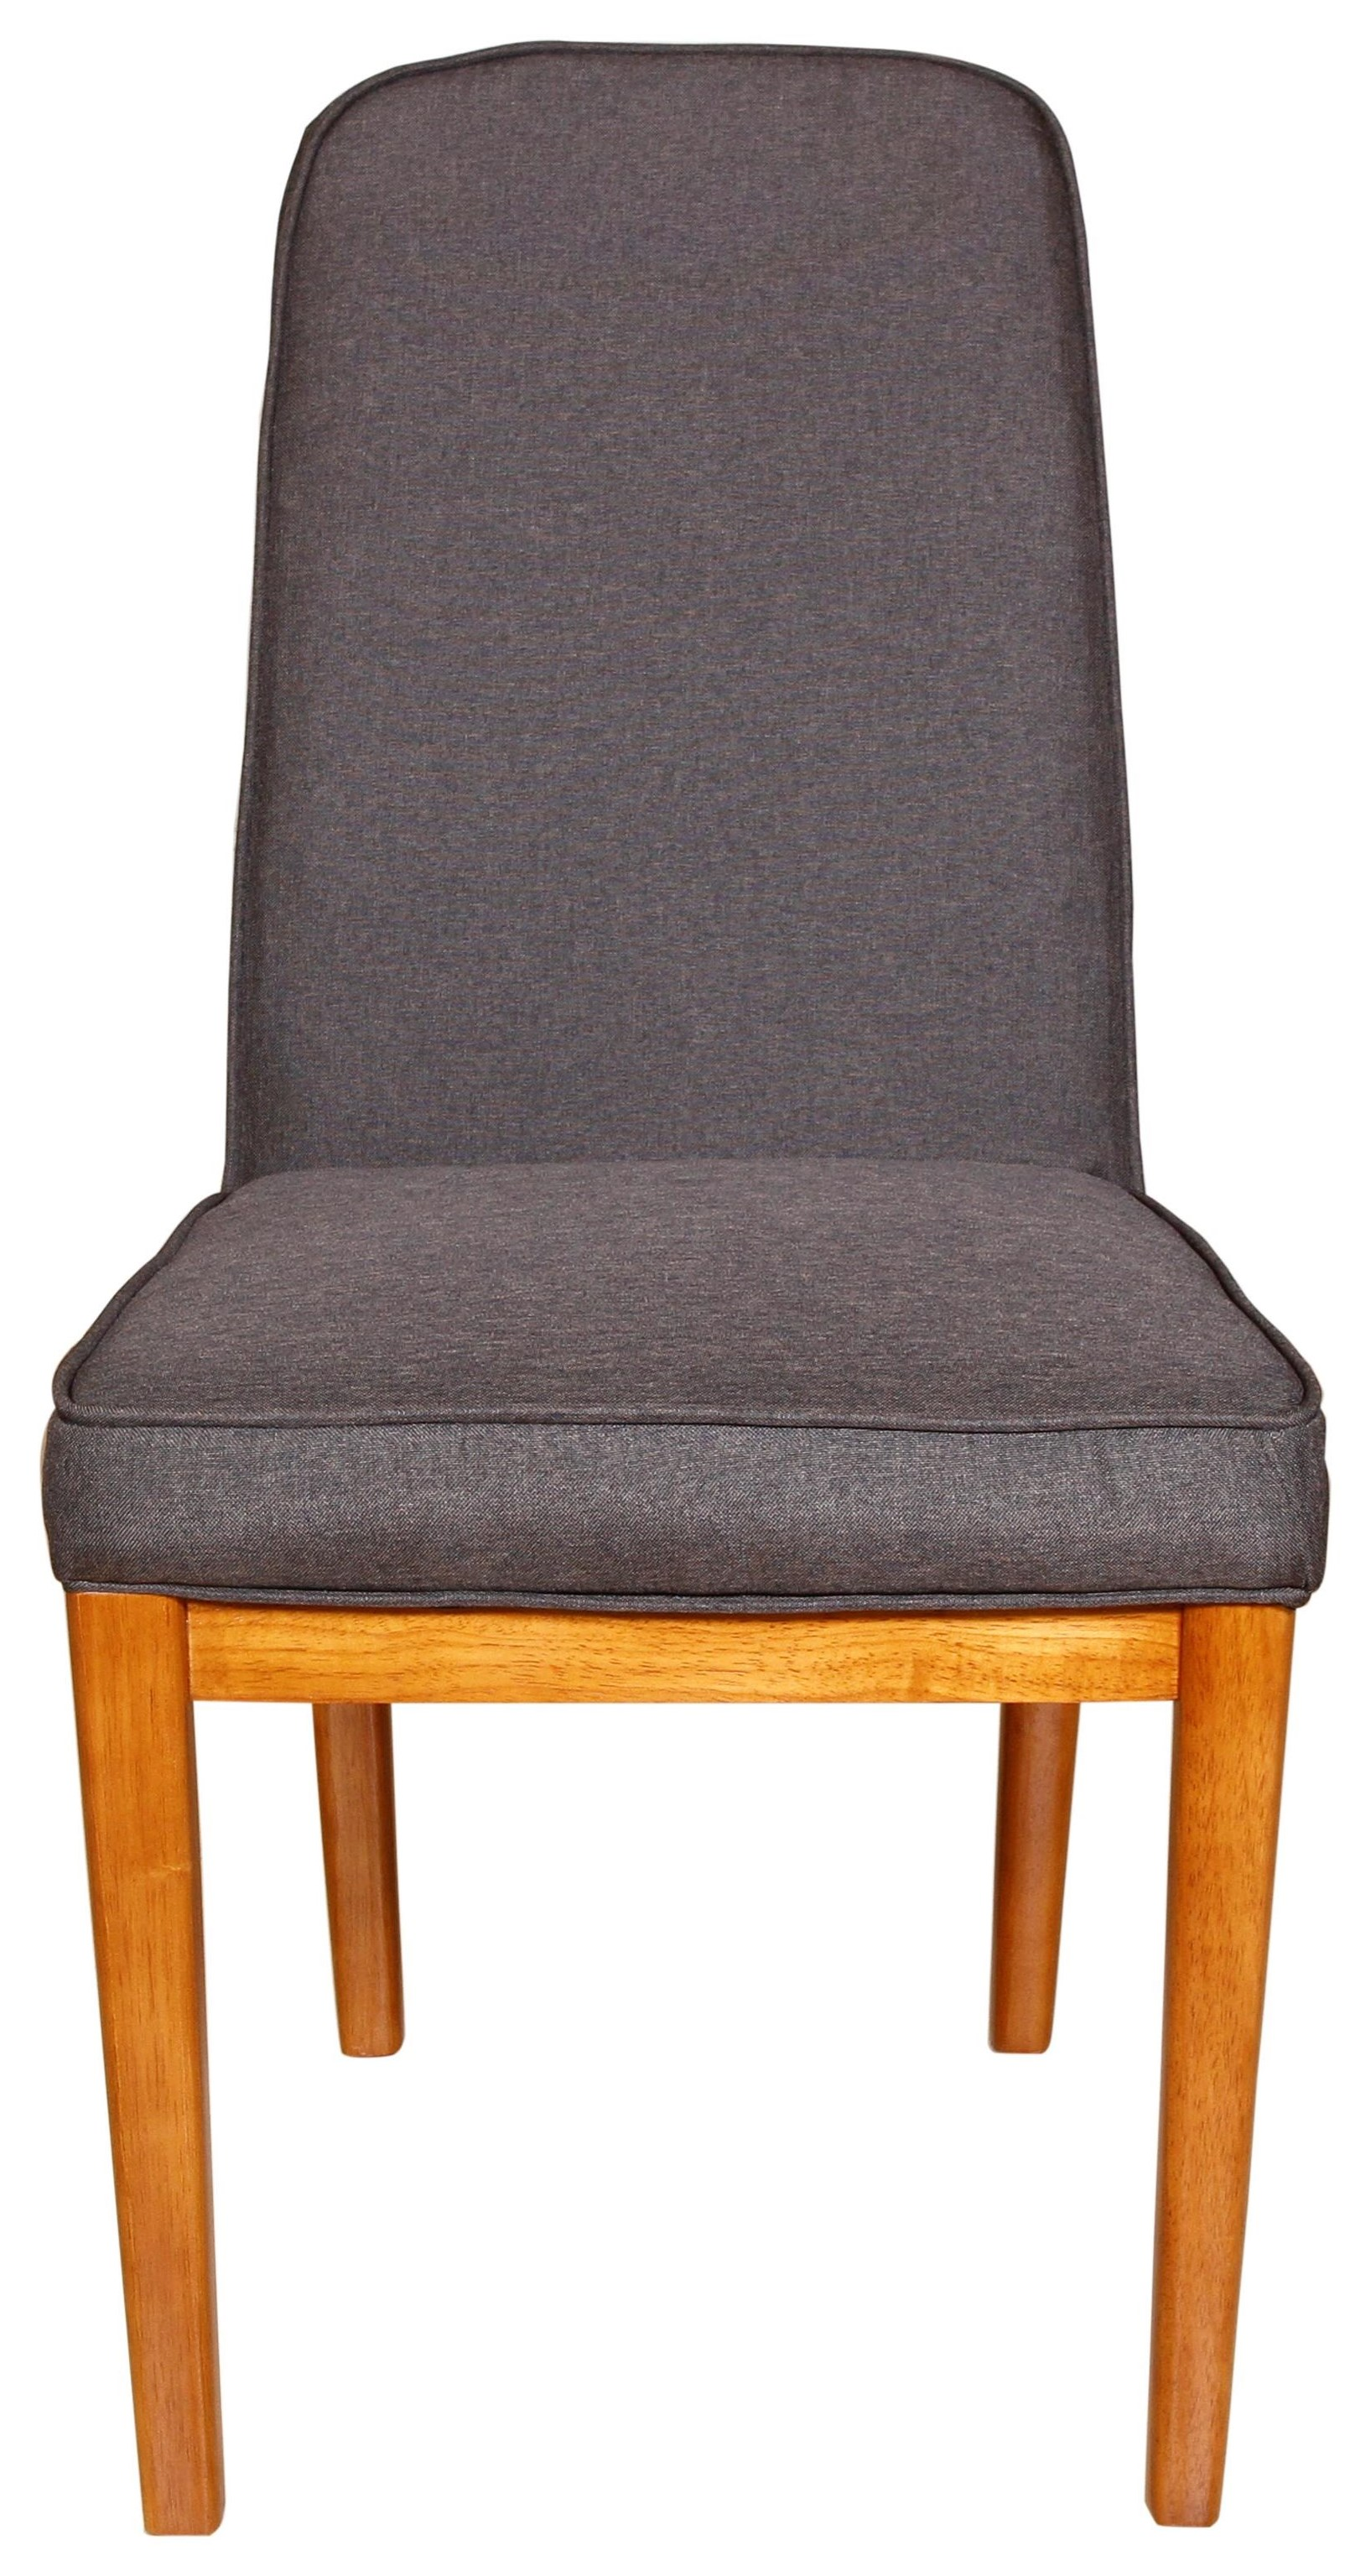 Berkeley Chair by Global Home at Red Knot